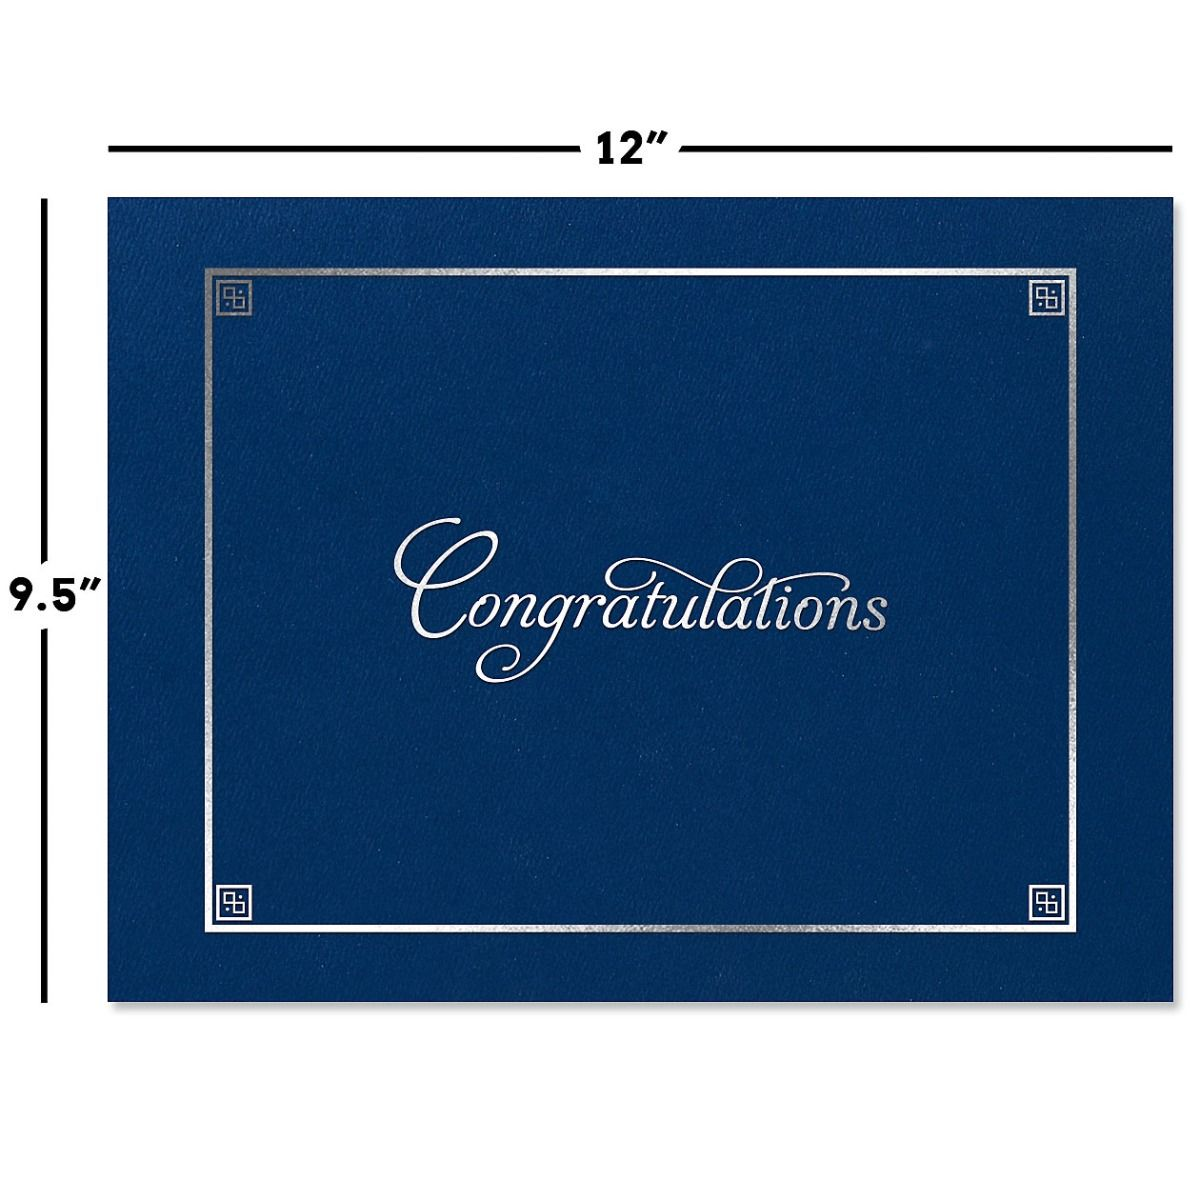 Congratulations Blue Certificate Jacket with Silver Border